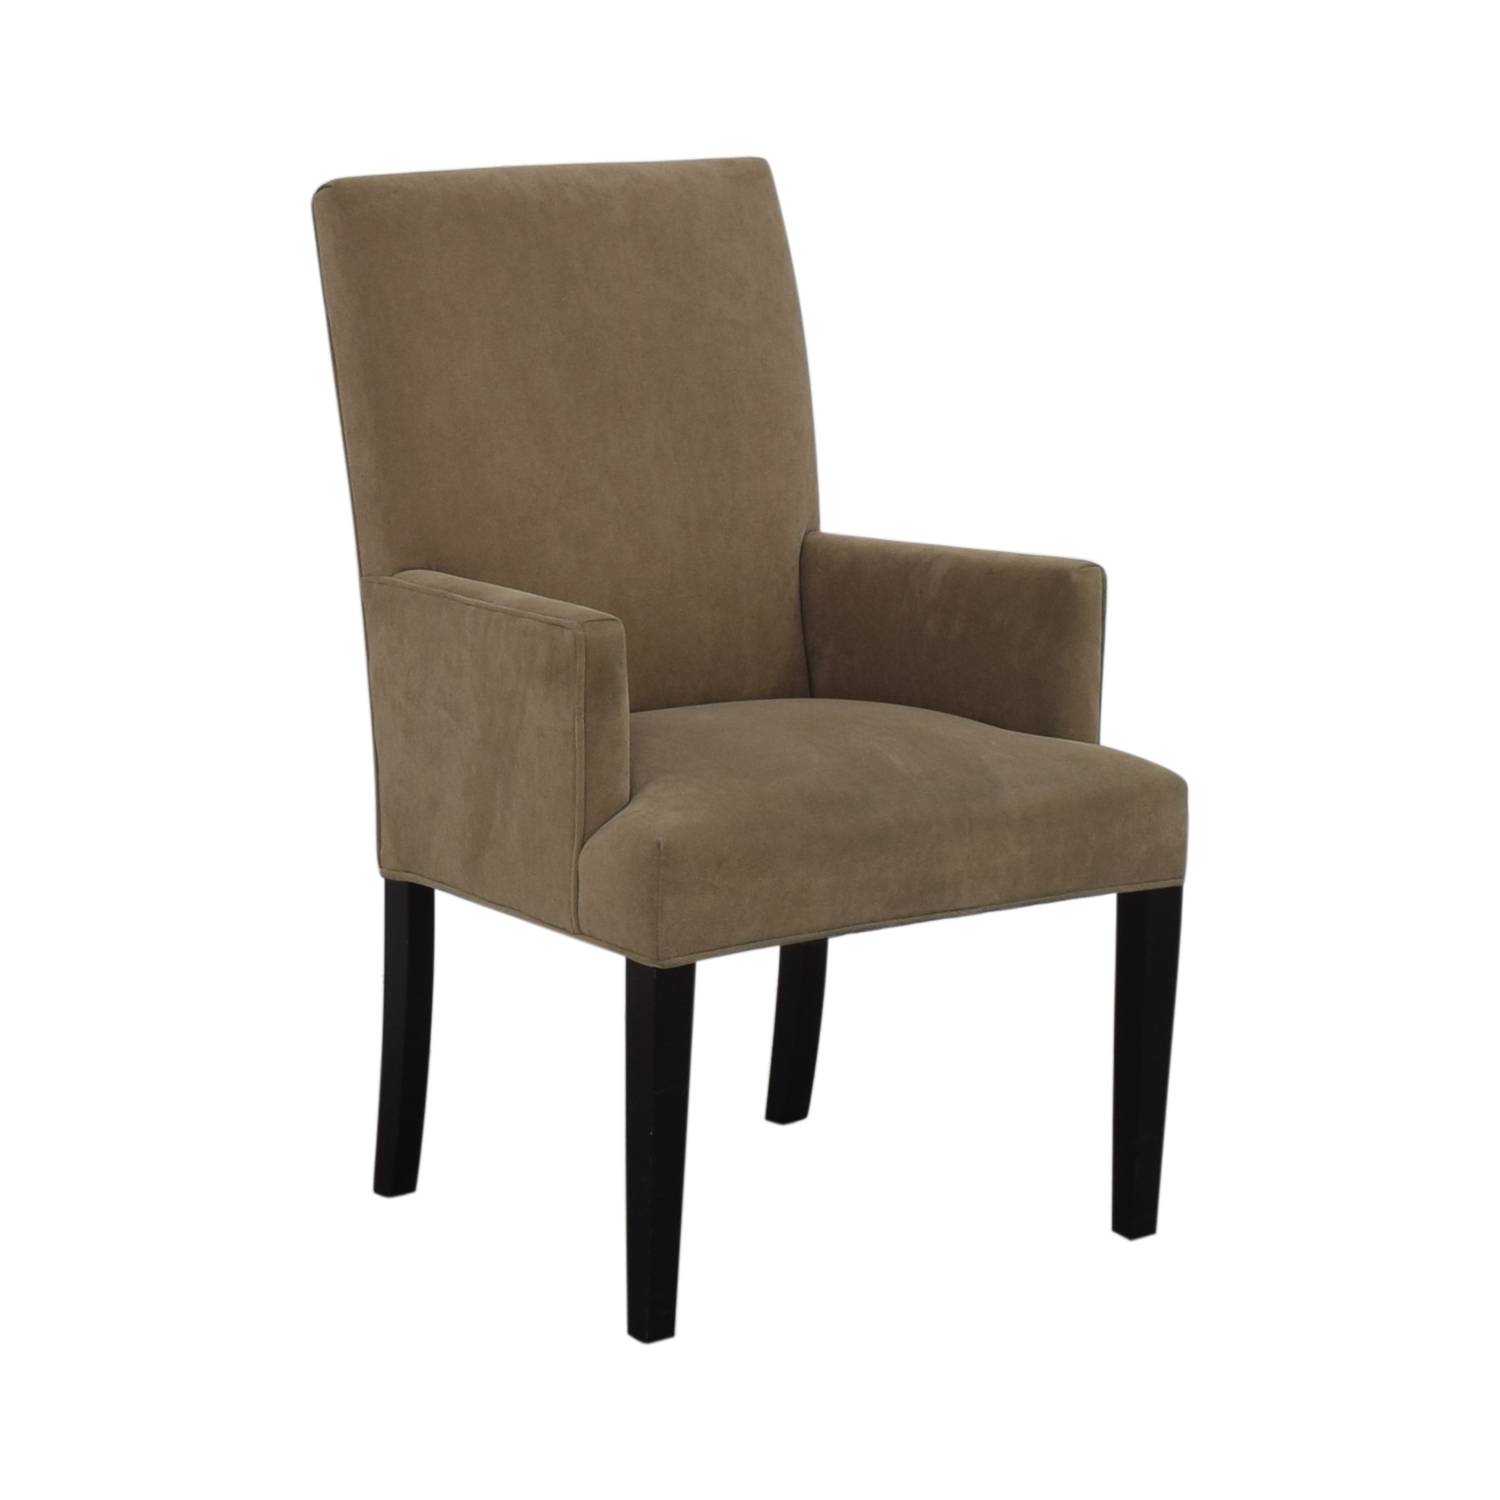 Crate & Barrel Crate & Barrel Tan Dining Chair second hand